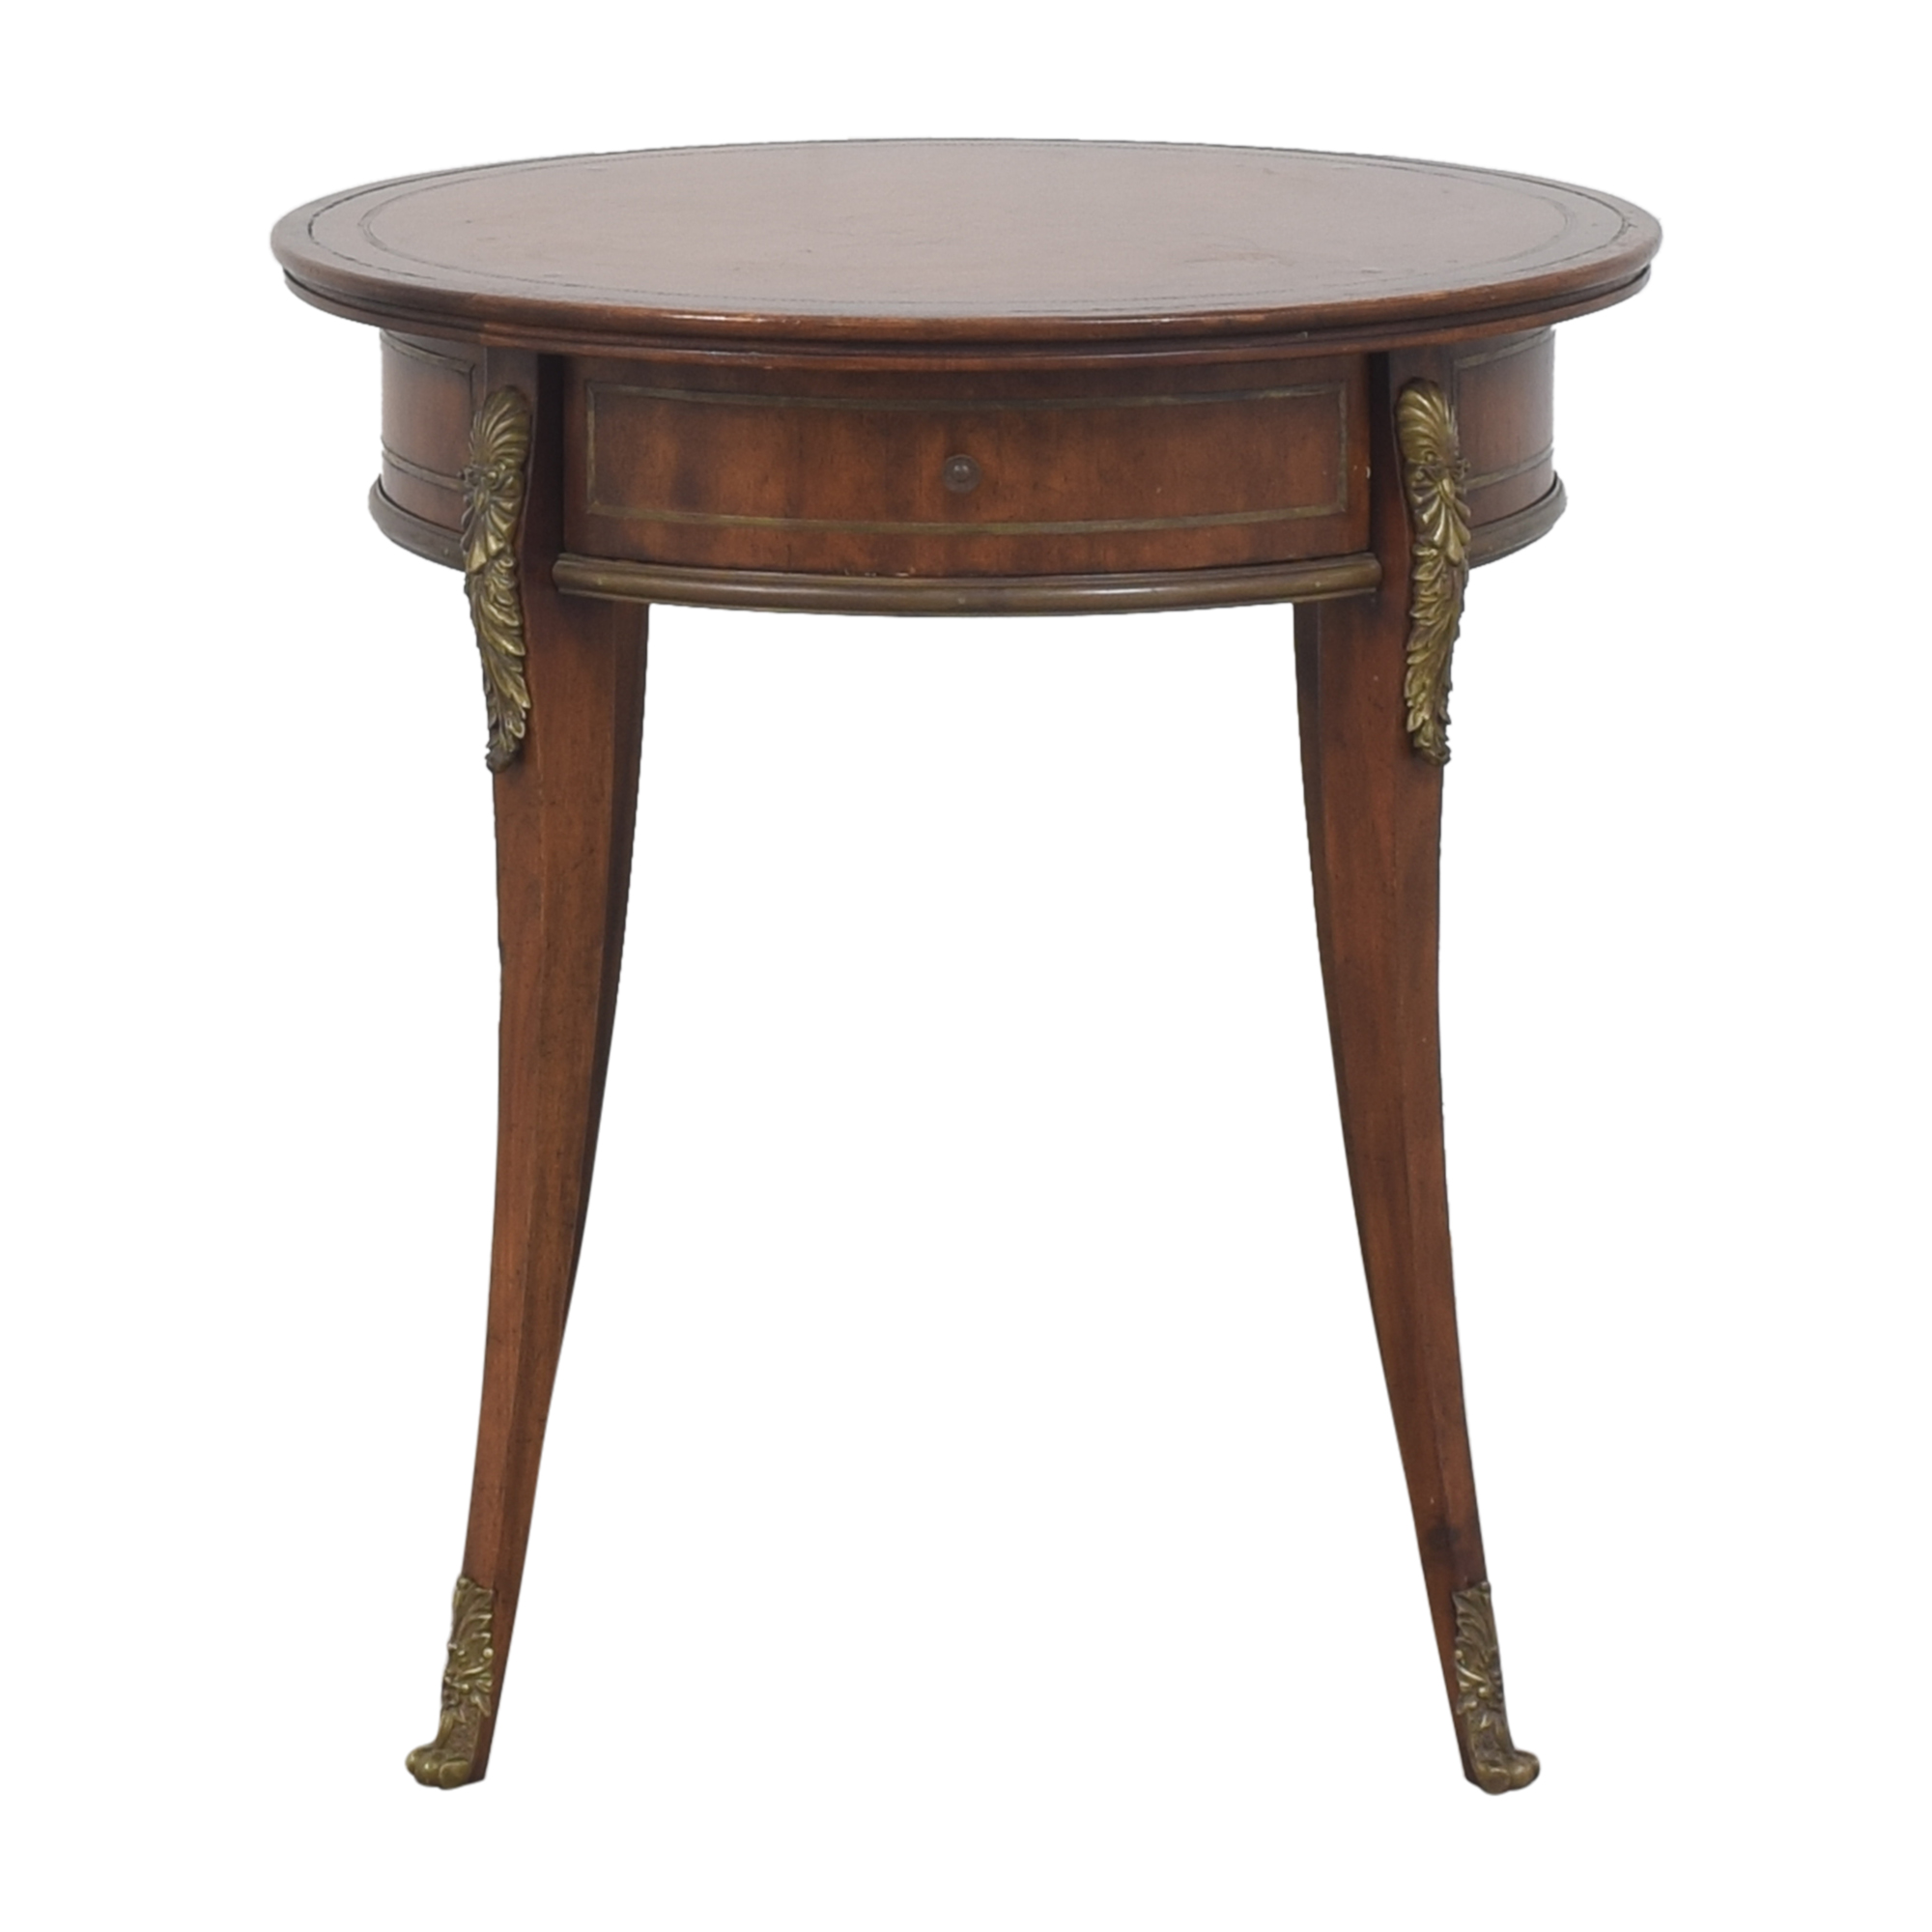 John-Richard John-Richard European Crossroads Single Drawer Side Table dimensions